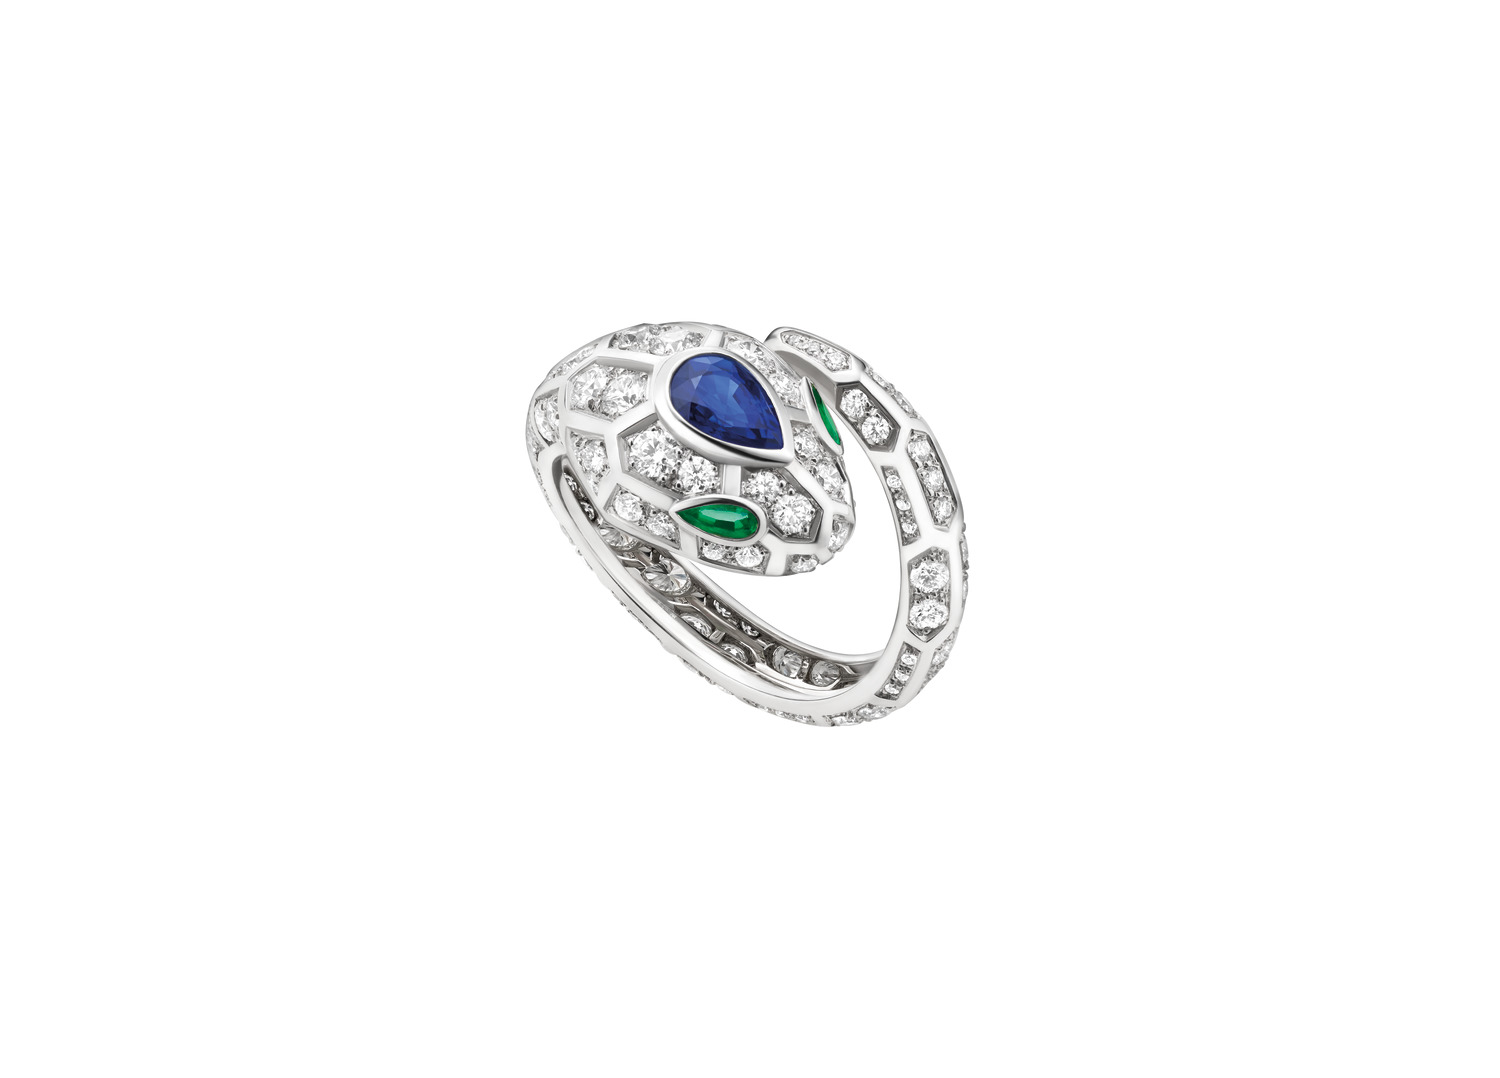 BVLGARI 'Serpenti 18 kt white gold ring